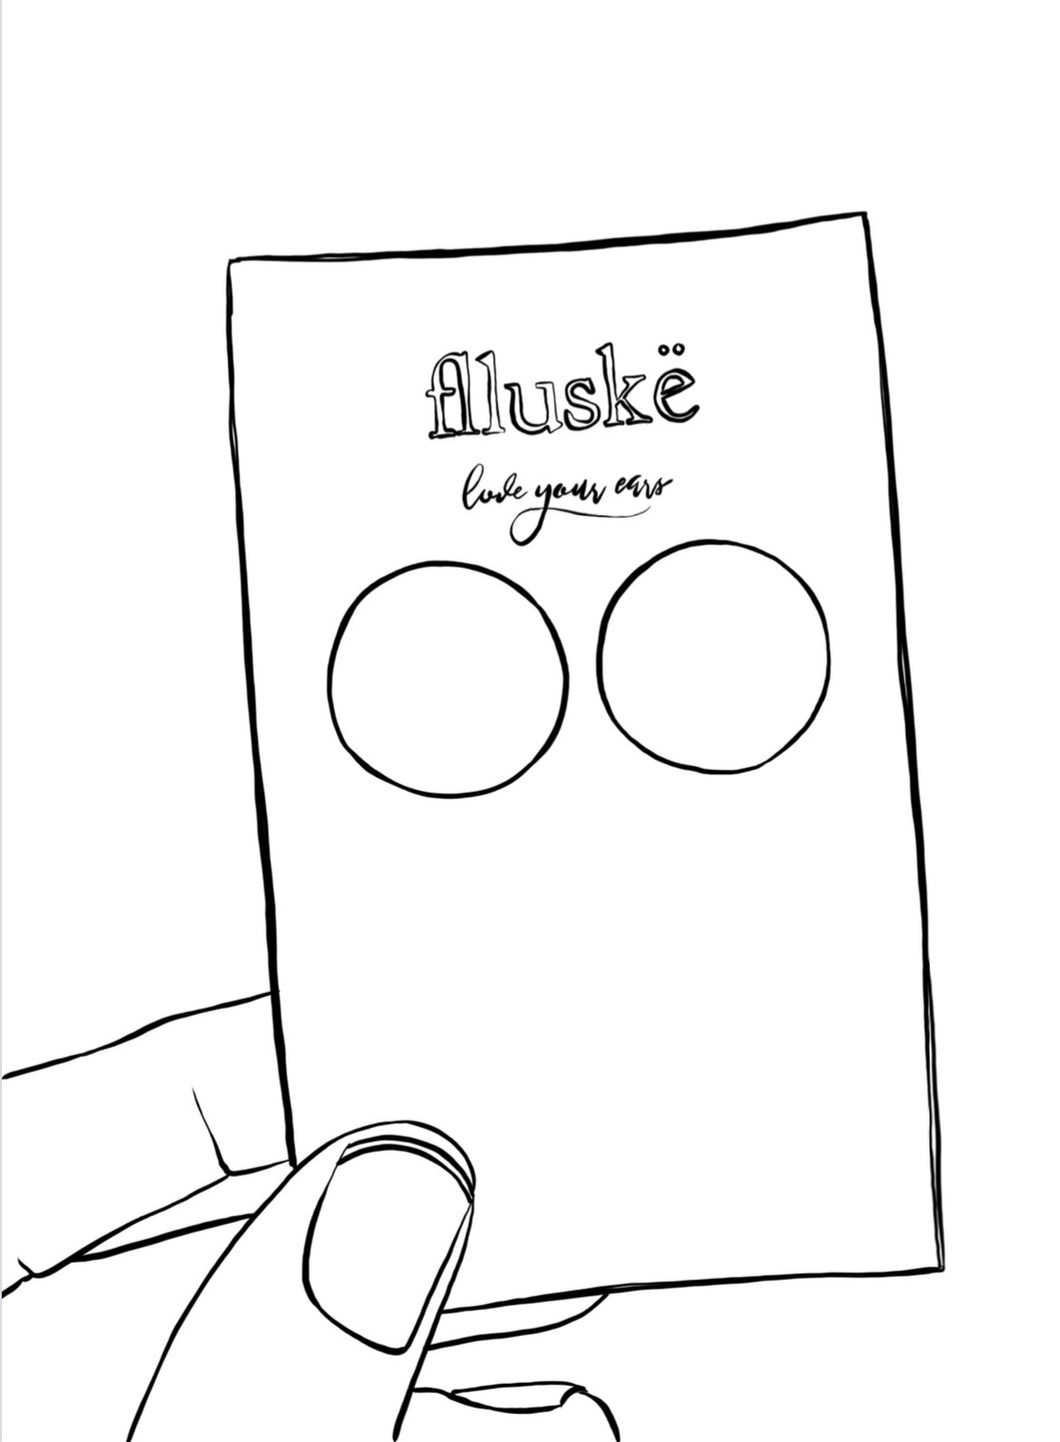 FREE Printable - flluskë Earring Colouring Page